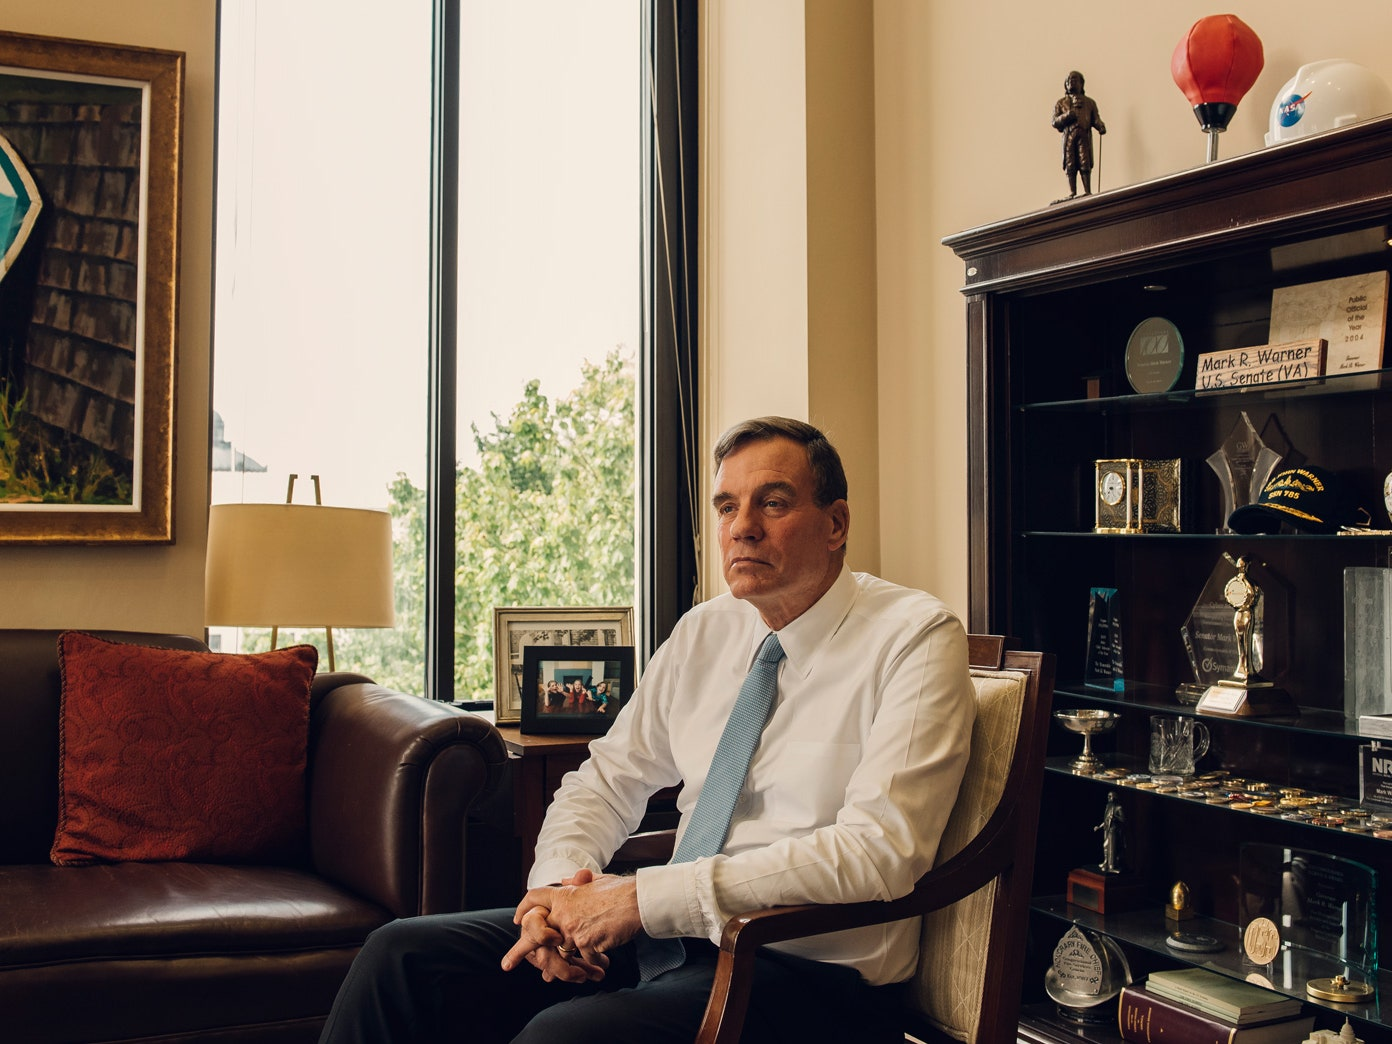 Mark R. Warner Phone Number, Email, Fan Mail, Address, Biography, Agent, Manager, Mailing address, Contact Info, Mailing Addresses